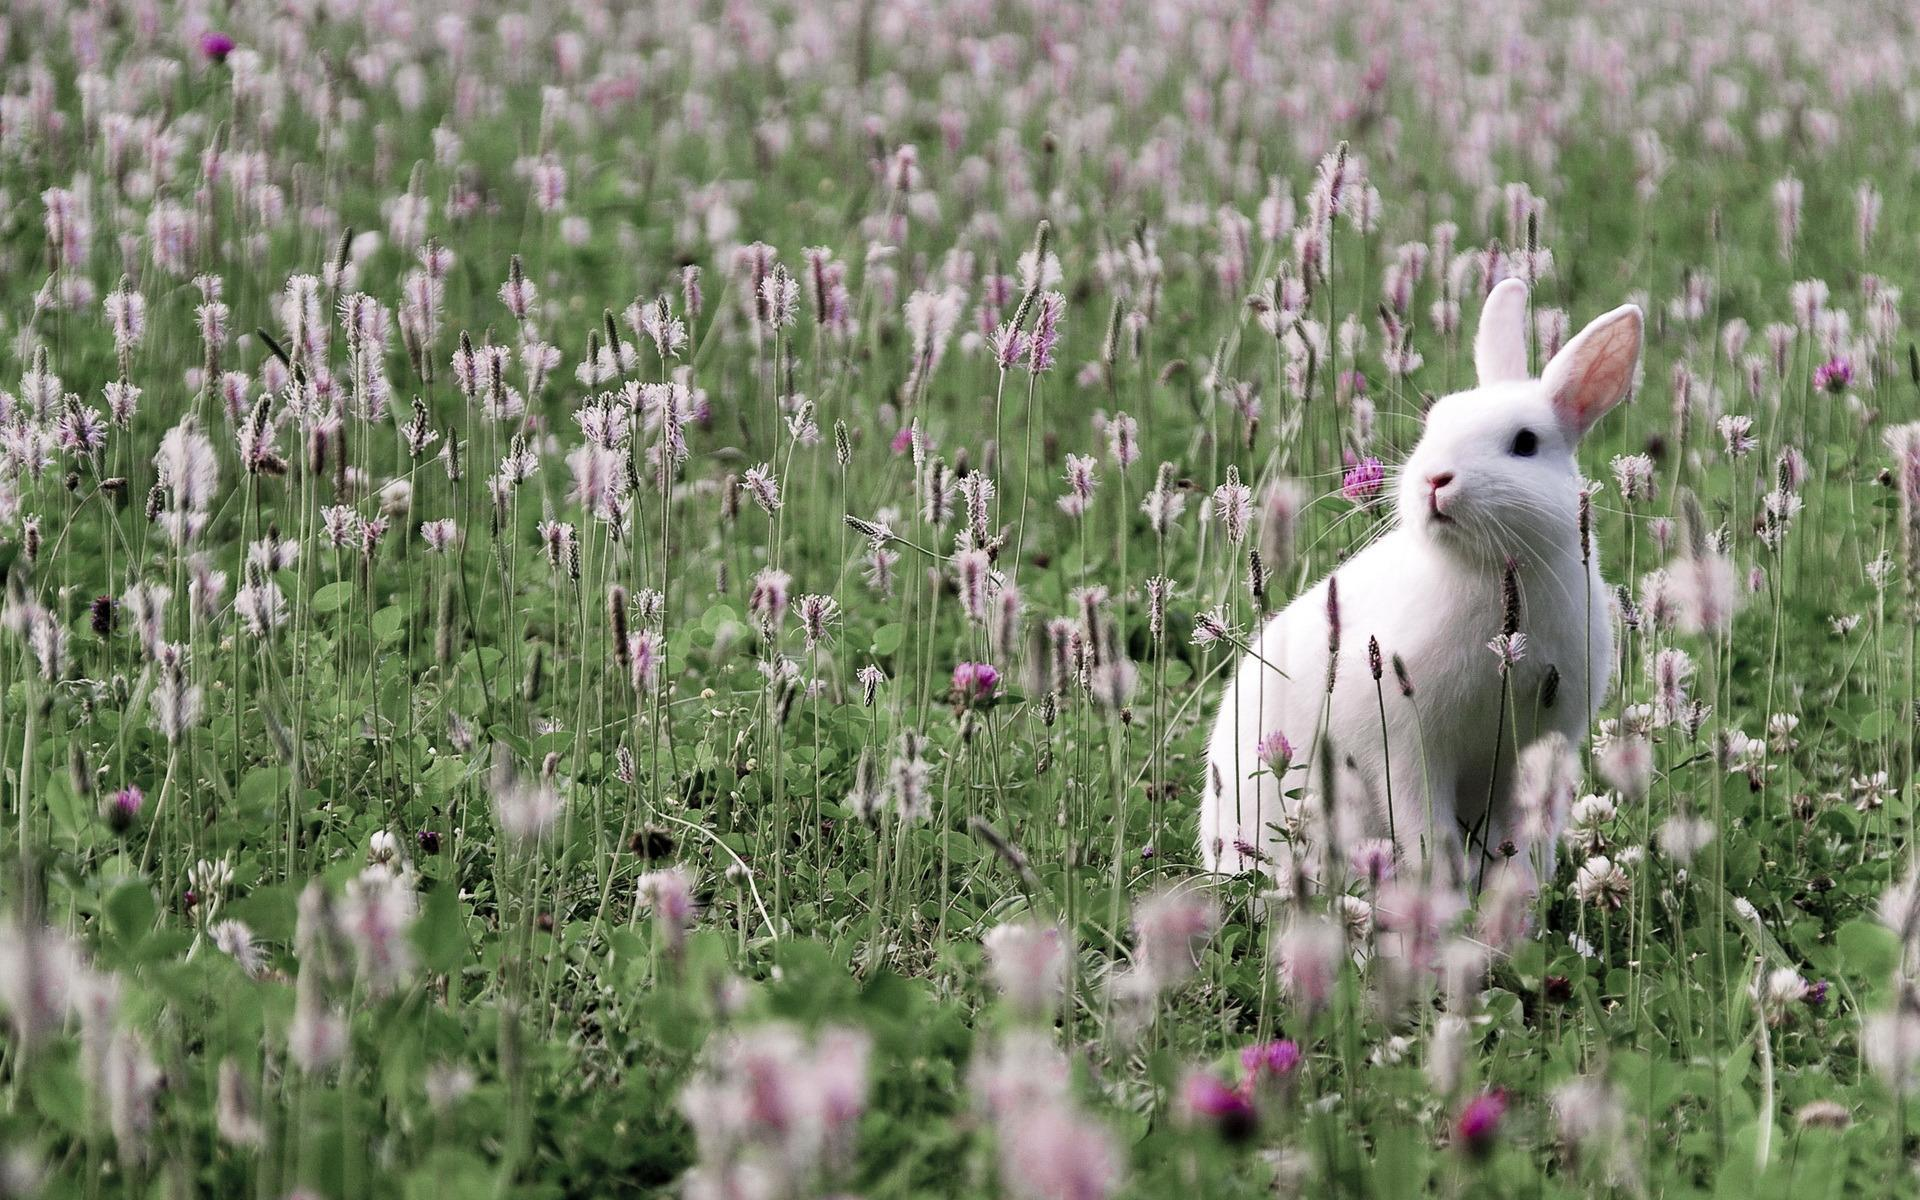 48191 download wallpaper Animals, Rabbits screensavers and pictures for free